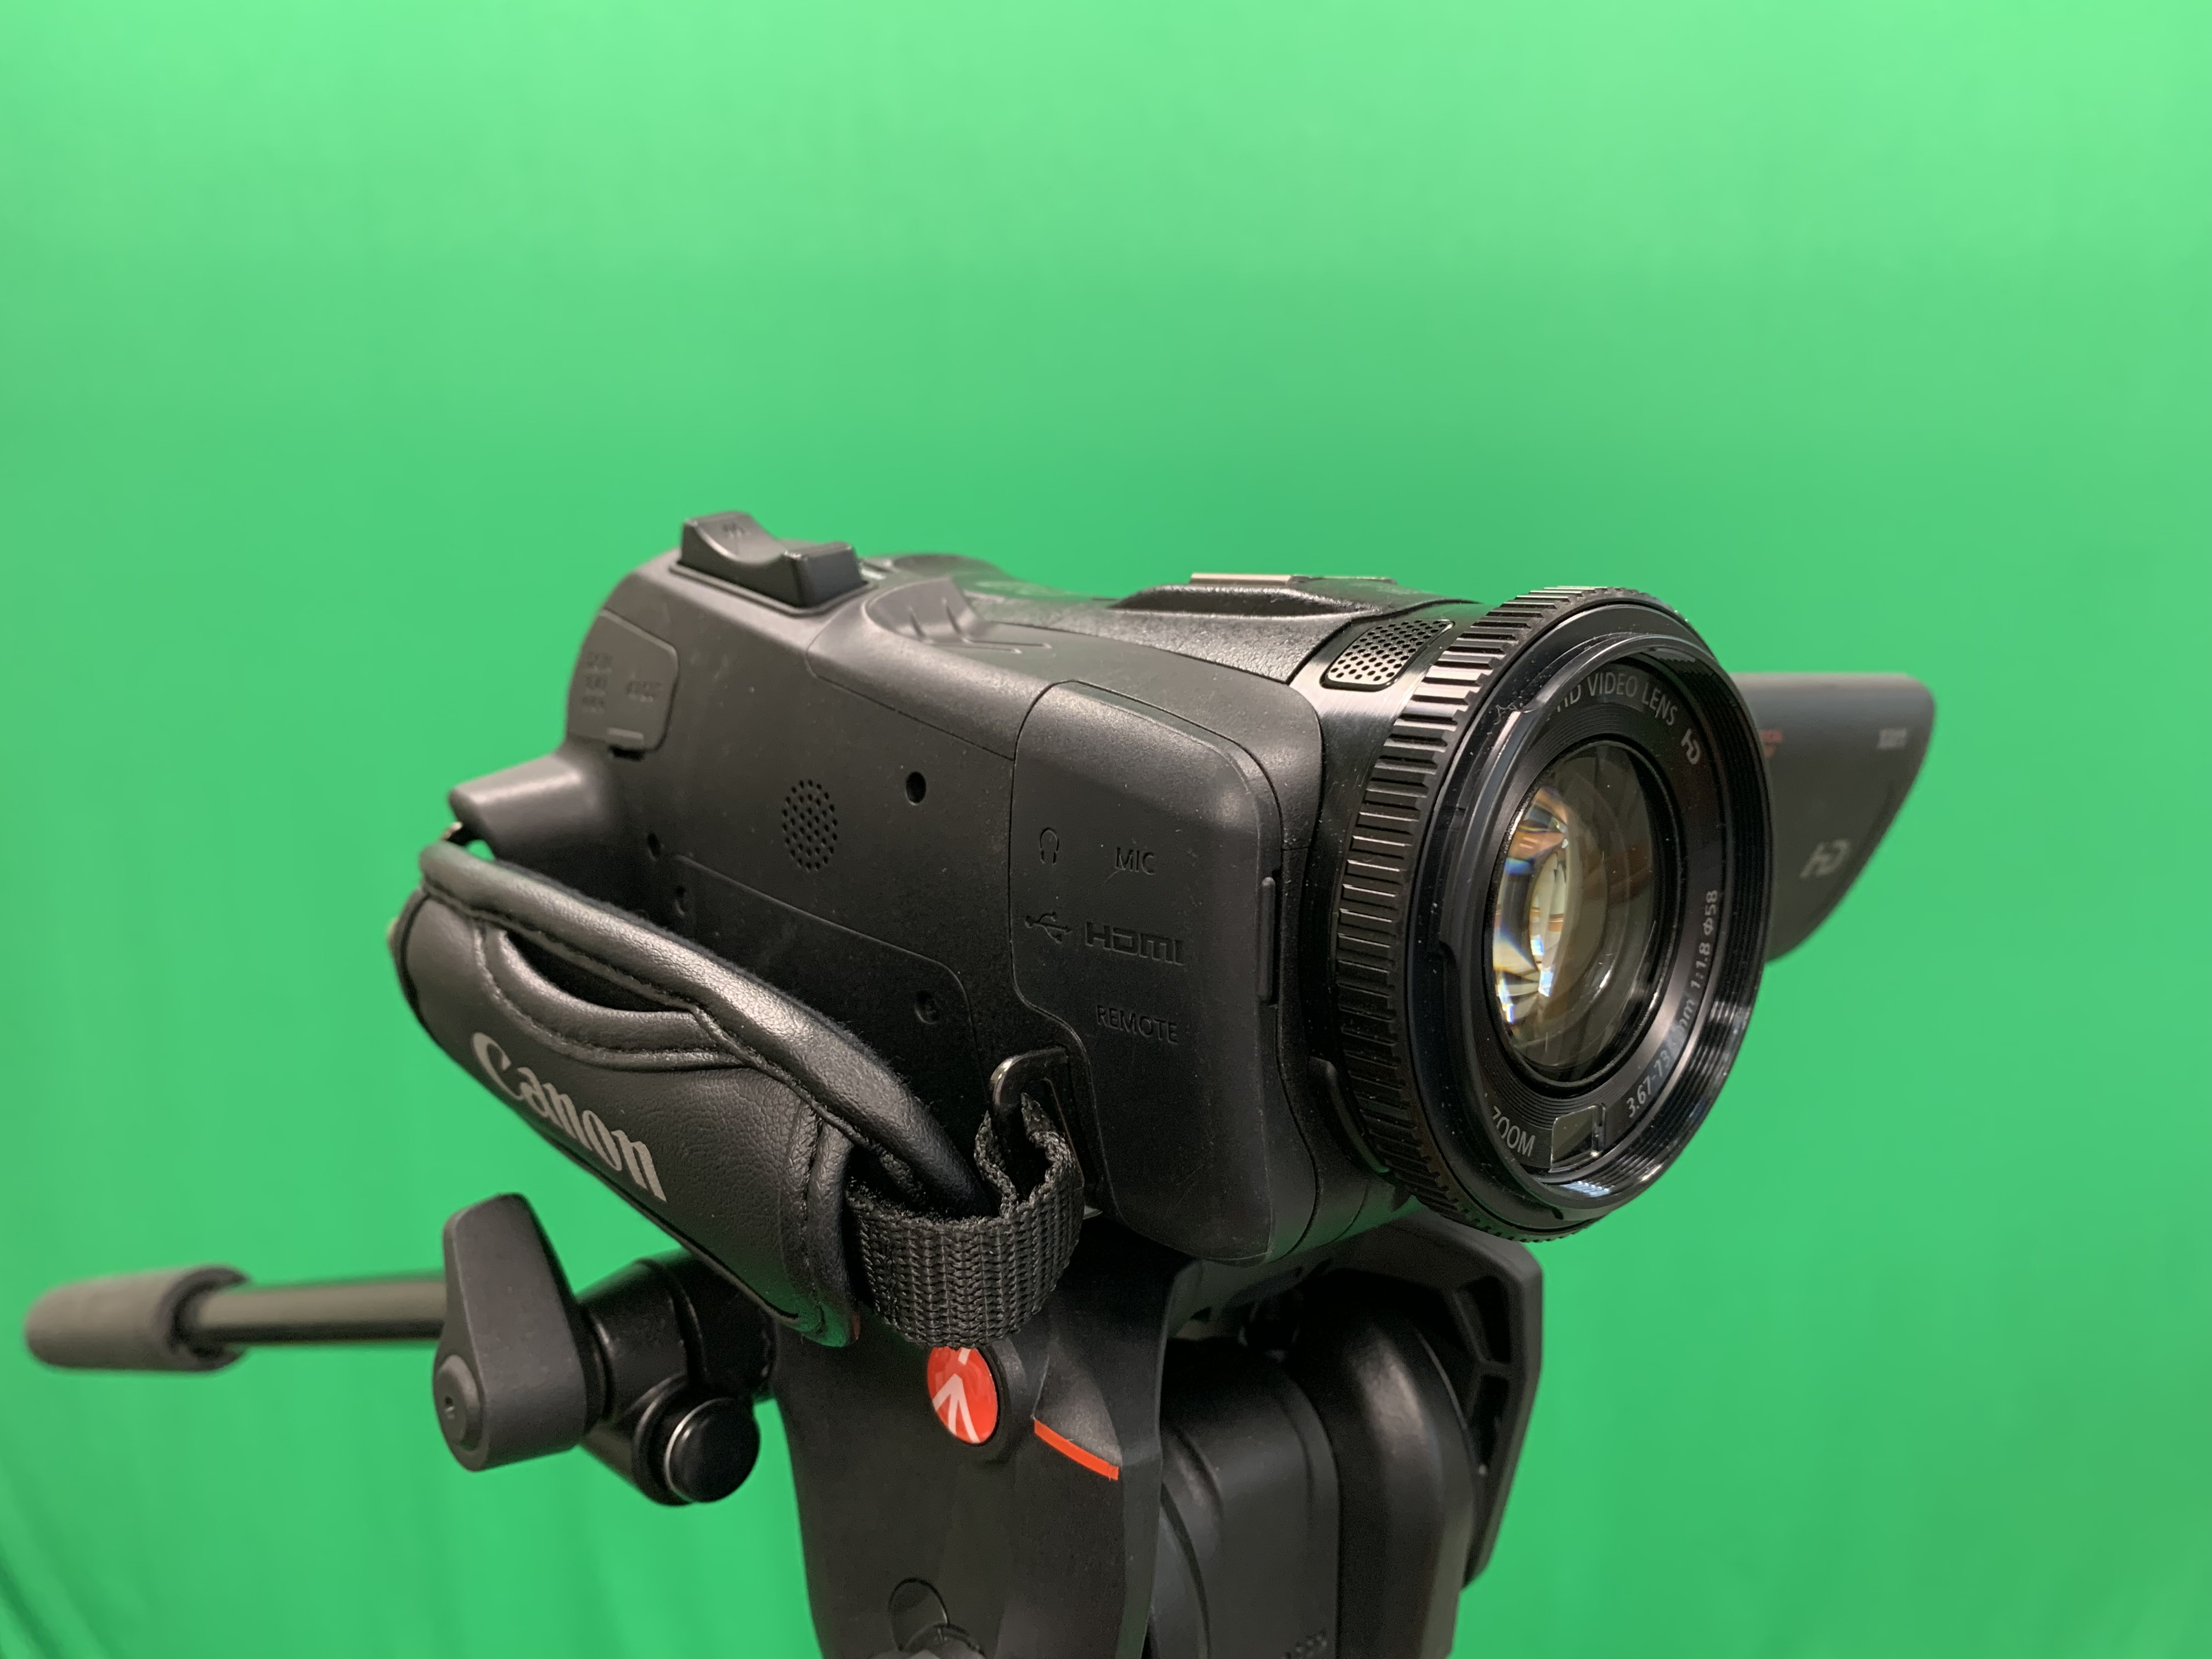 Hands-On Video Recording